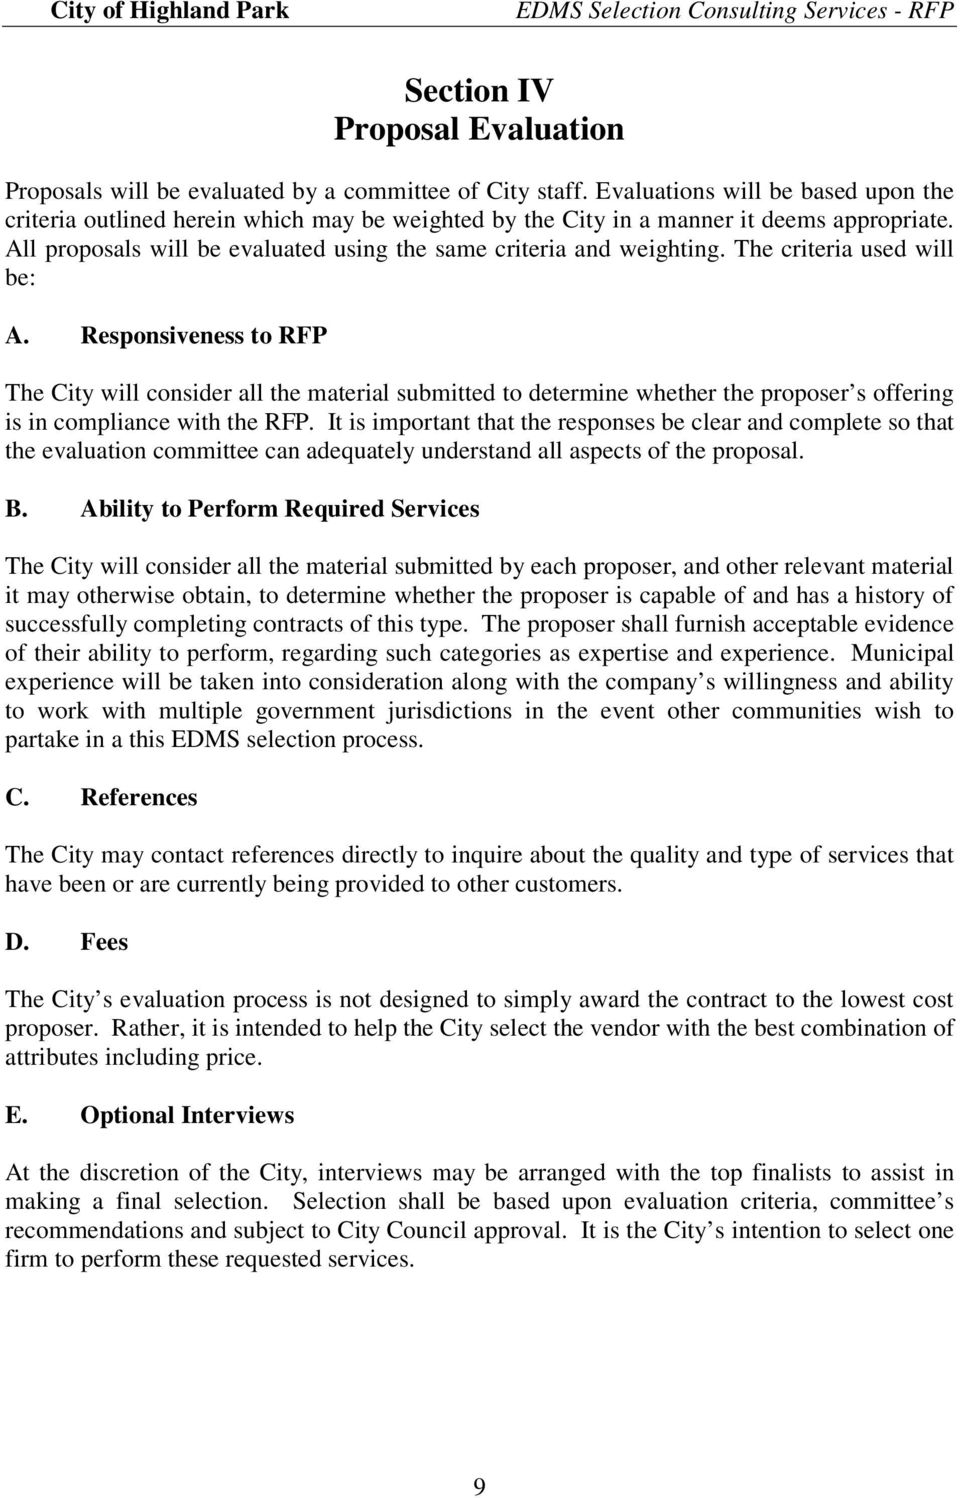 The criteria used will be: A. Responsiveness to RFP The City will consider all the material submitted to determine whether the proposer s offering is in compliance with the RFP.